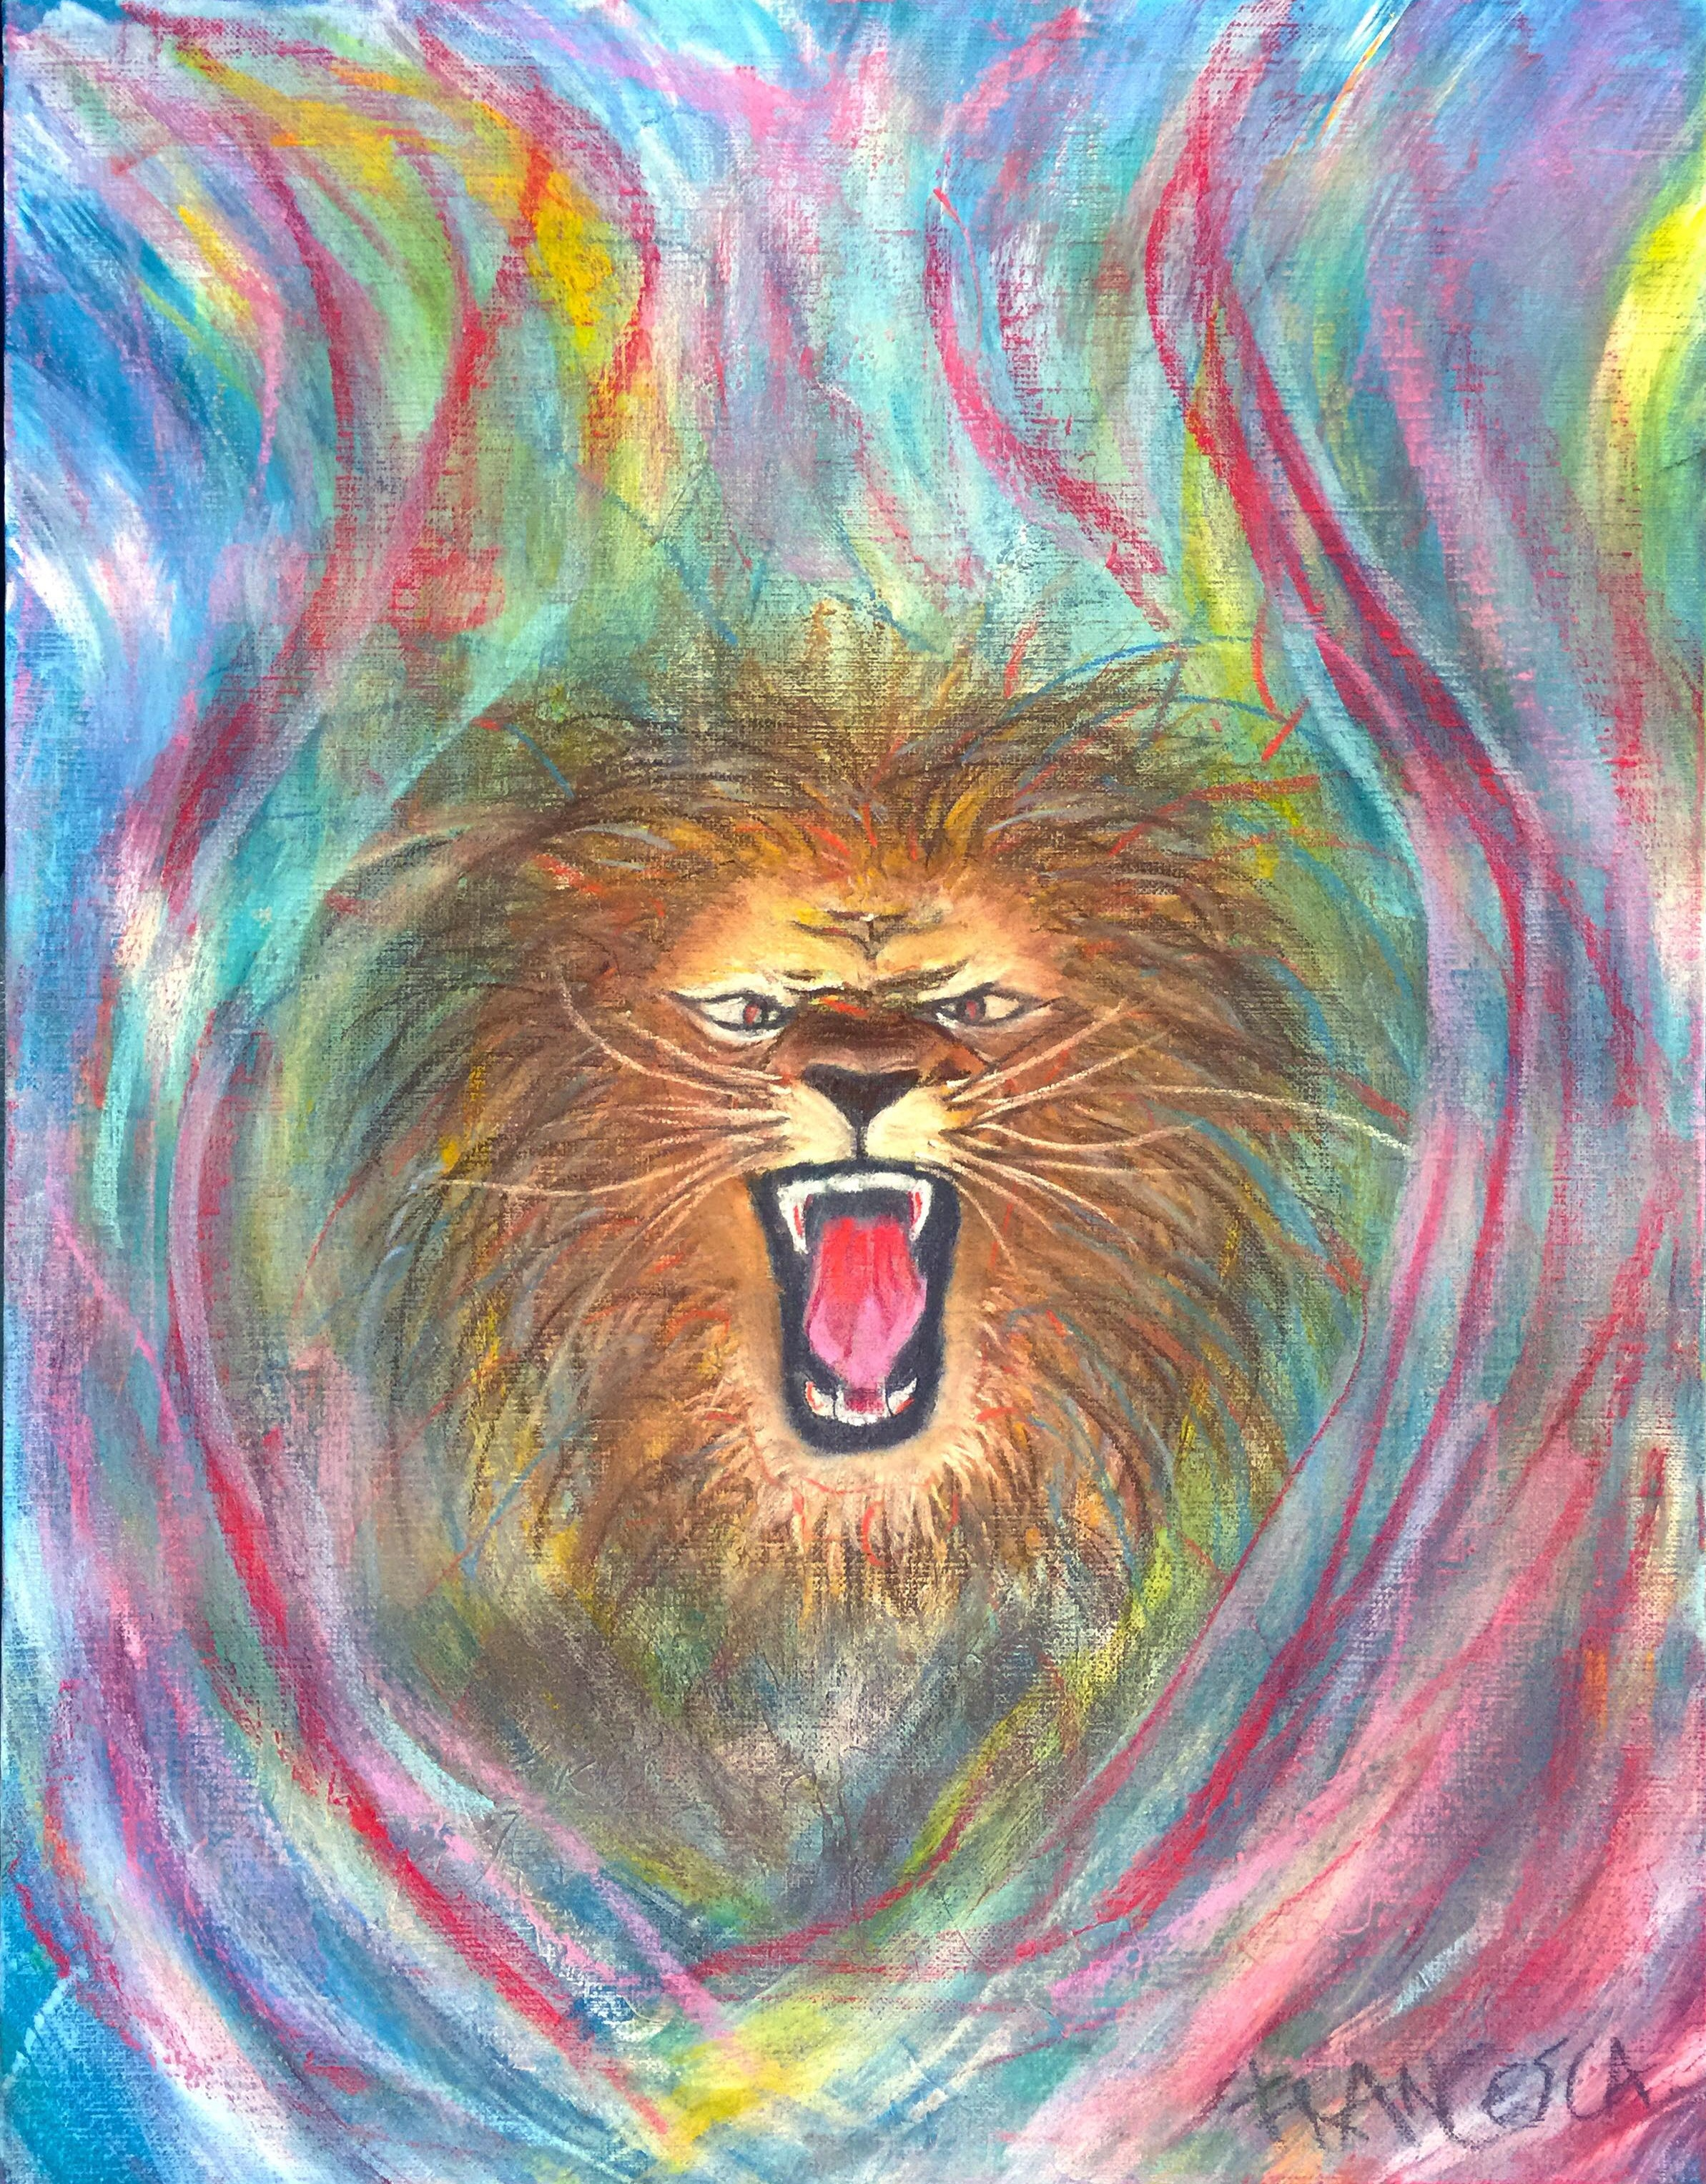 Splitting the Sea with the Roar of the Lion of Judah